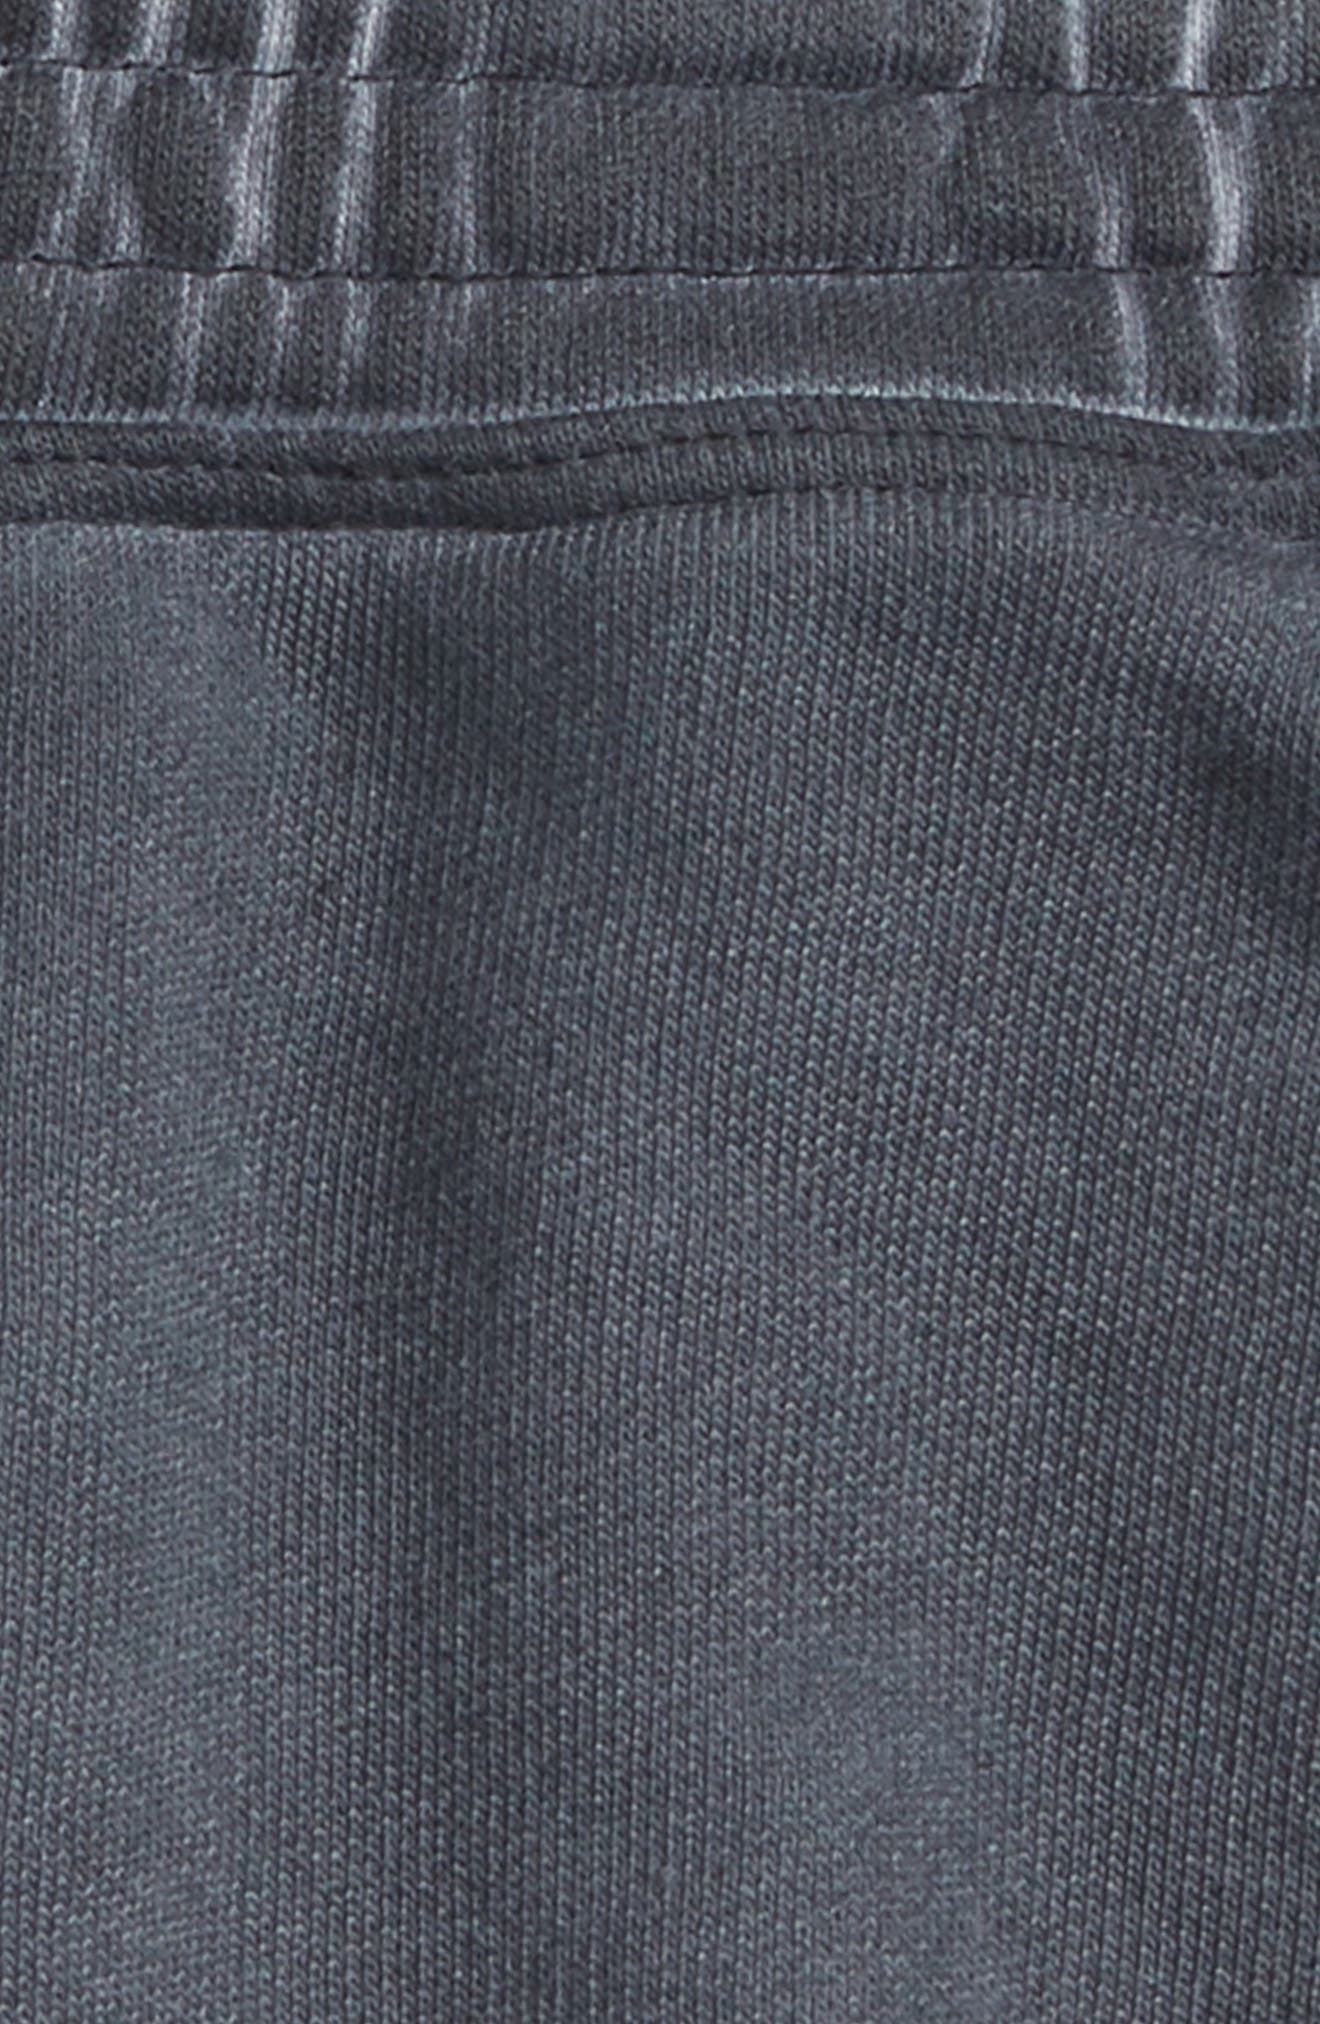 Dyed Gym Shorts,                             Alternate thumbnail 2, color,                             Dyed Graphite